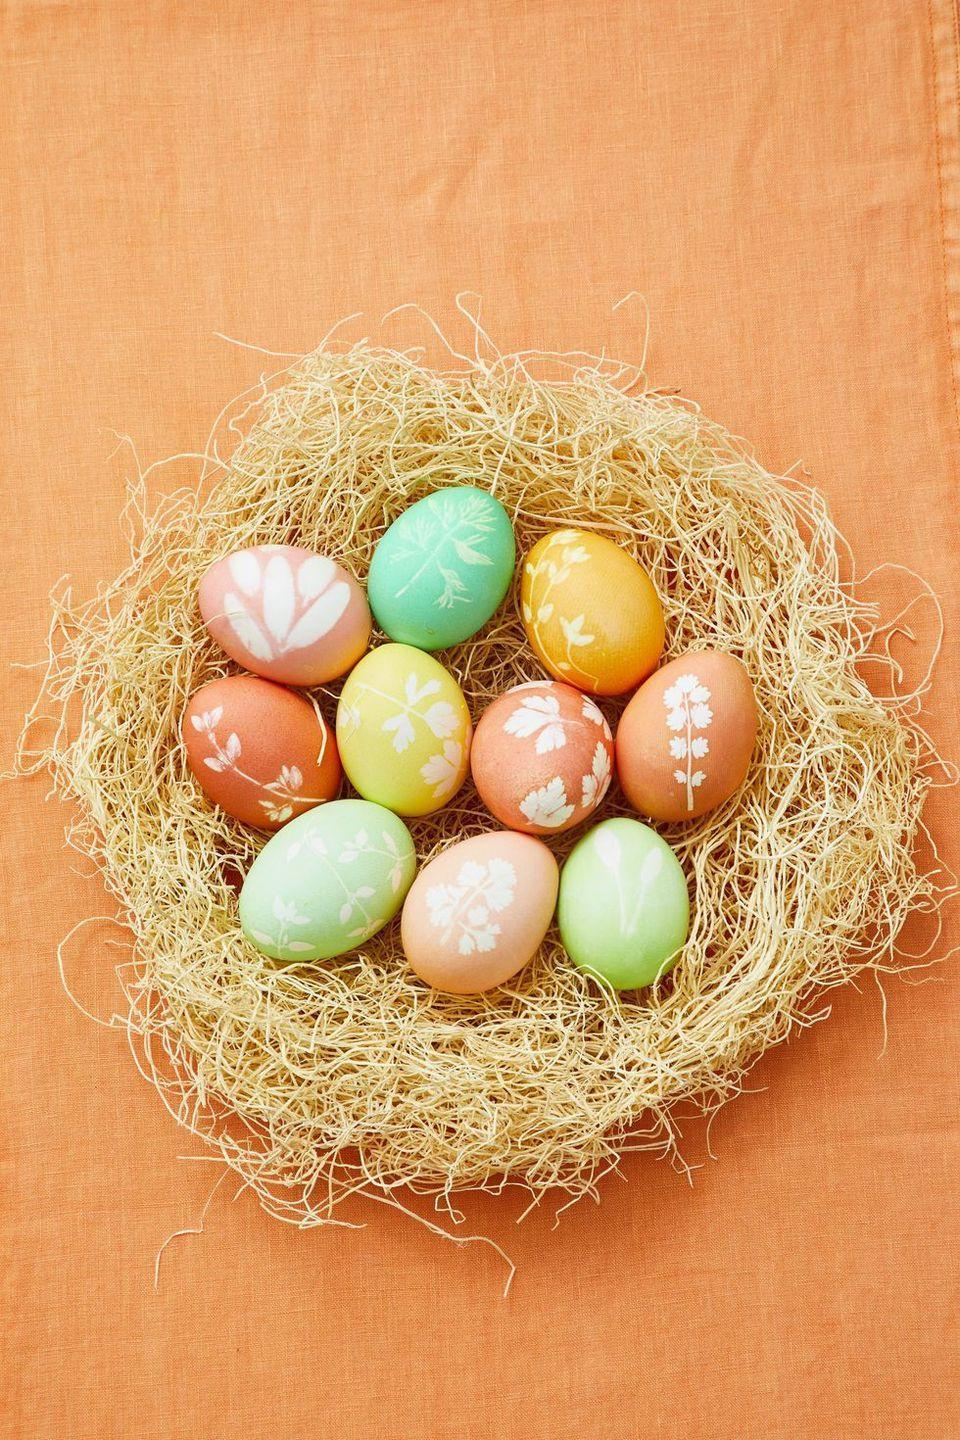 """<p>Natural herbs like thyme and sage make the most beautiful patterns for your Easter eggs. Once you're finished decorating, toss the eggs in a fake nest for an unforgettable display.</p><p><strong><em><a href=""""https://www.womansday.com/home/crafts-projects/g2216/easter-eggs/?slide=10"""" rel=""""nofollow noopener"""" target=""""_blank"""" data-ylk=""""slk:Get the Dipped Herb Silhouettes tutorial."""" class=""""link rapid-noclick-resp"""">Get the Dipped Herb Silhouettes tutorial.</a></em></strong></p><p><strong><a class=""""link rapid-noclick-resp"""" href=""""https://www.amazon.com/Round-Artificial-Moss-Nest-Ornament/dp/B00IMN9MGU/?tag=syn-yahoo-20&ascsubtag=%5Bartid%7C10070.g.1751%5Bsrc%7Cyahoo-us"""" rel=""""nofollow noopener"""" target=""""_blank"""" data-ylk=""""slk:SHOP ARTIFICIAL MOSS NESTS"""">SHOP ARTIFICIAL MOSS NESTS</a></strong></p>"""